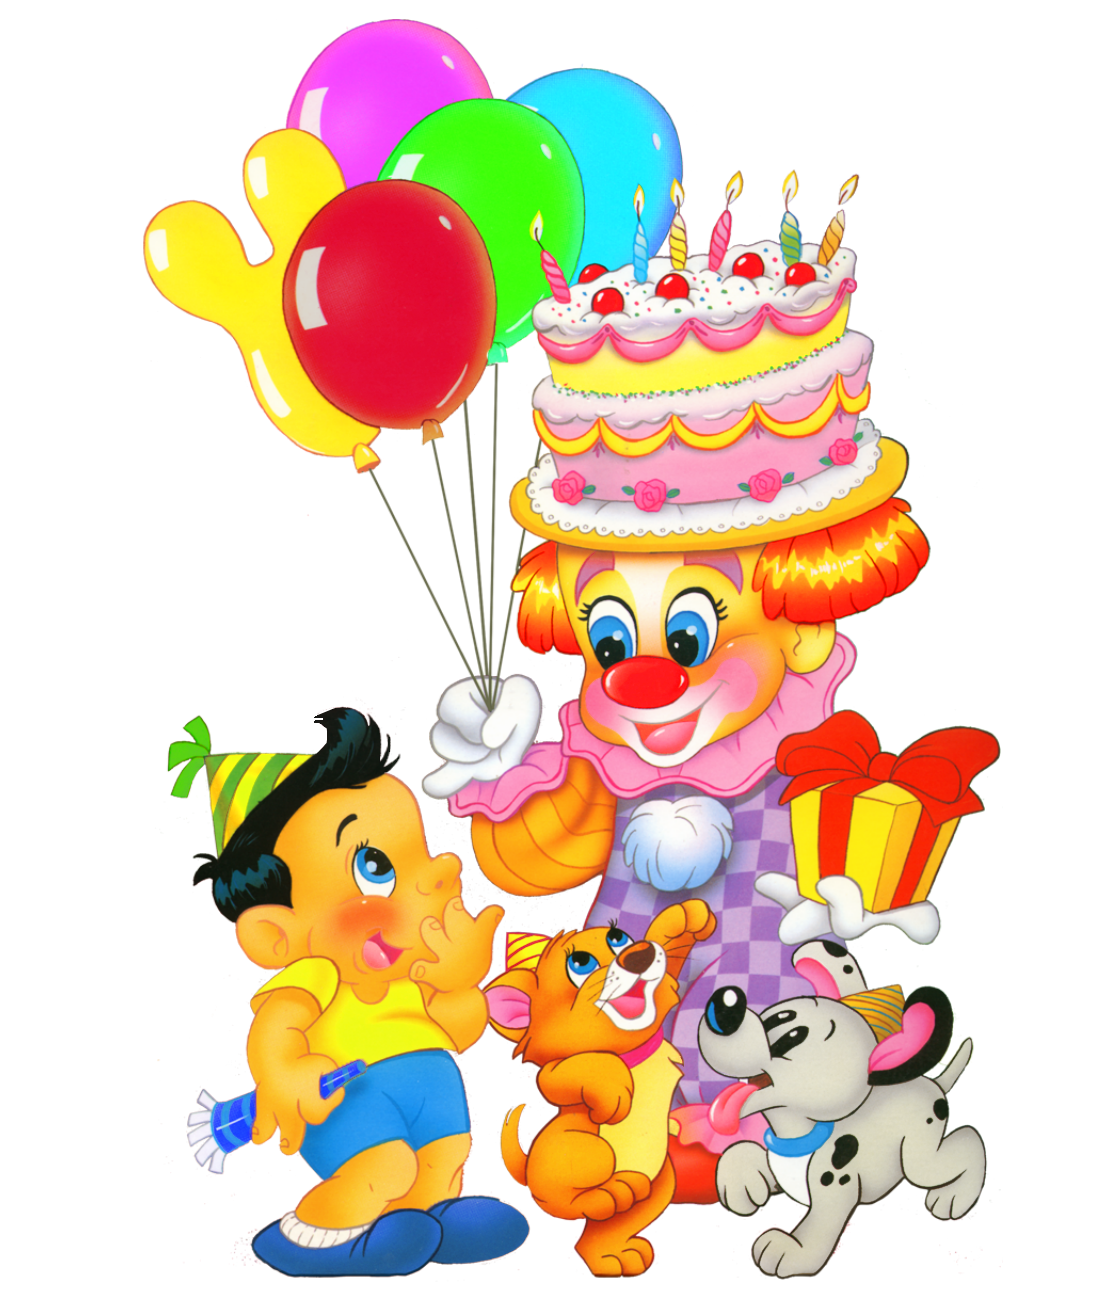 Happy birthday boy png. Kids decor clipart picture